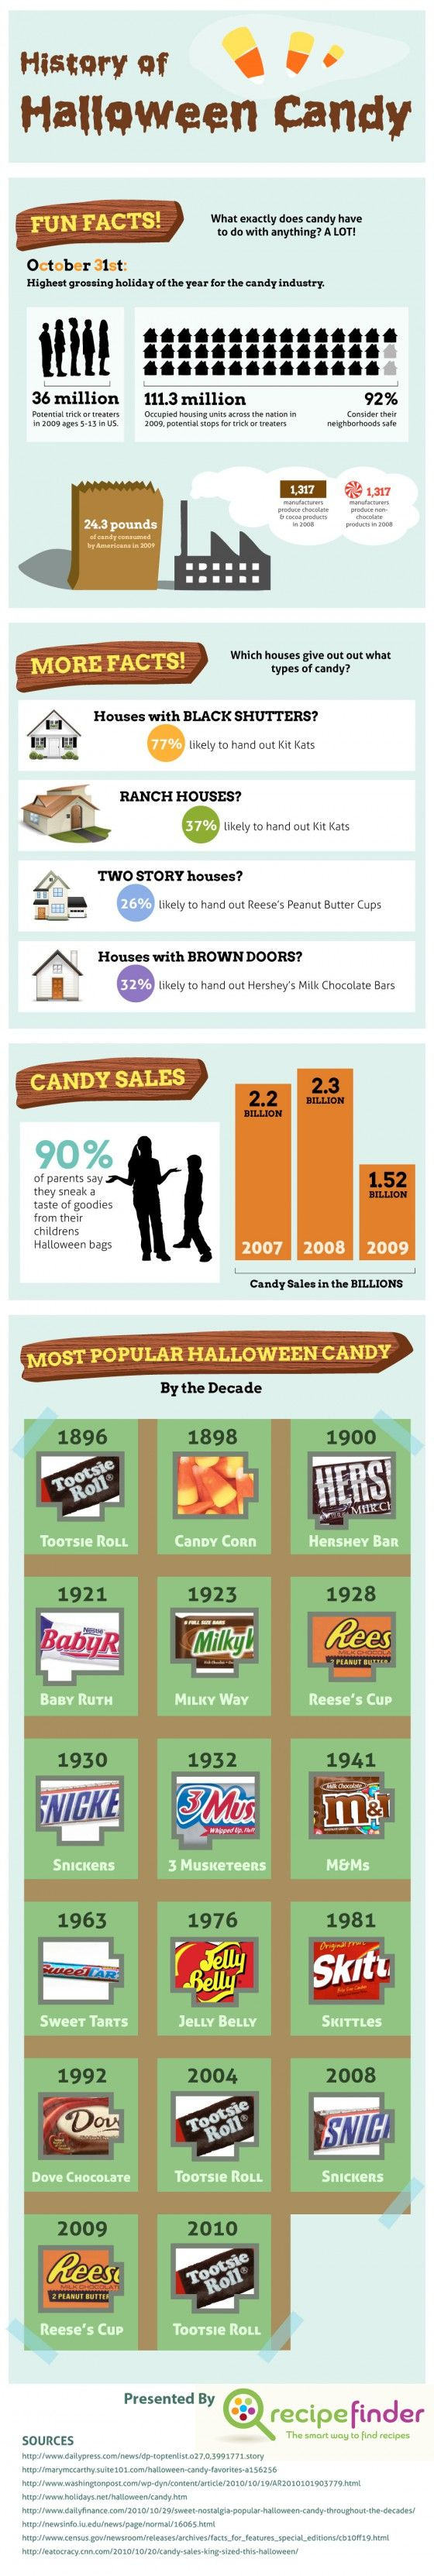 the history of halloween candy - Strange Halloween Facts